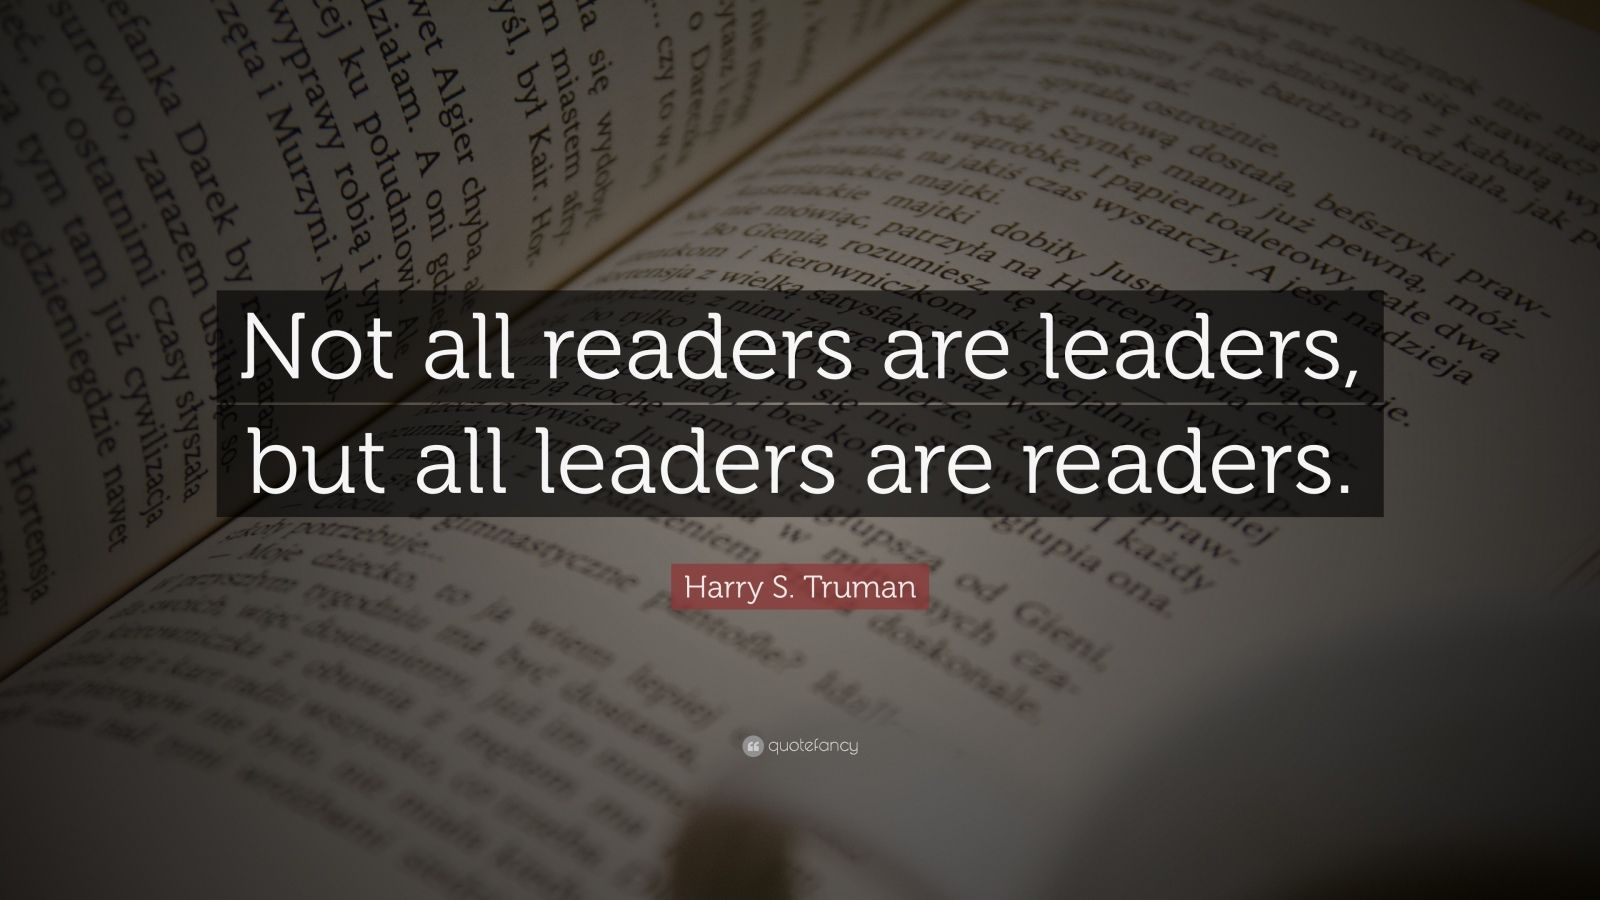 Elon Musk Quotes Wallpaper Harry S Truman Quote Not All Readers Are Leaders But